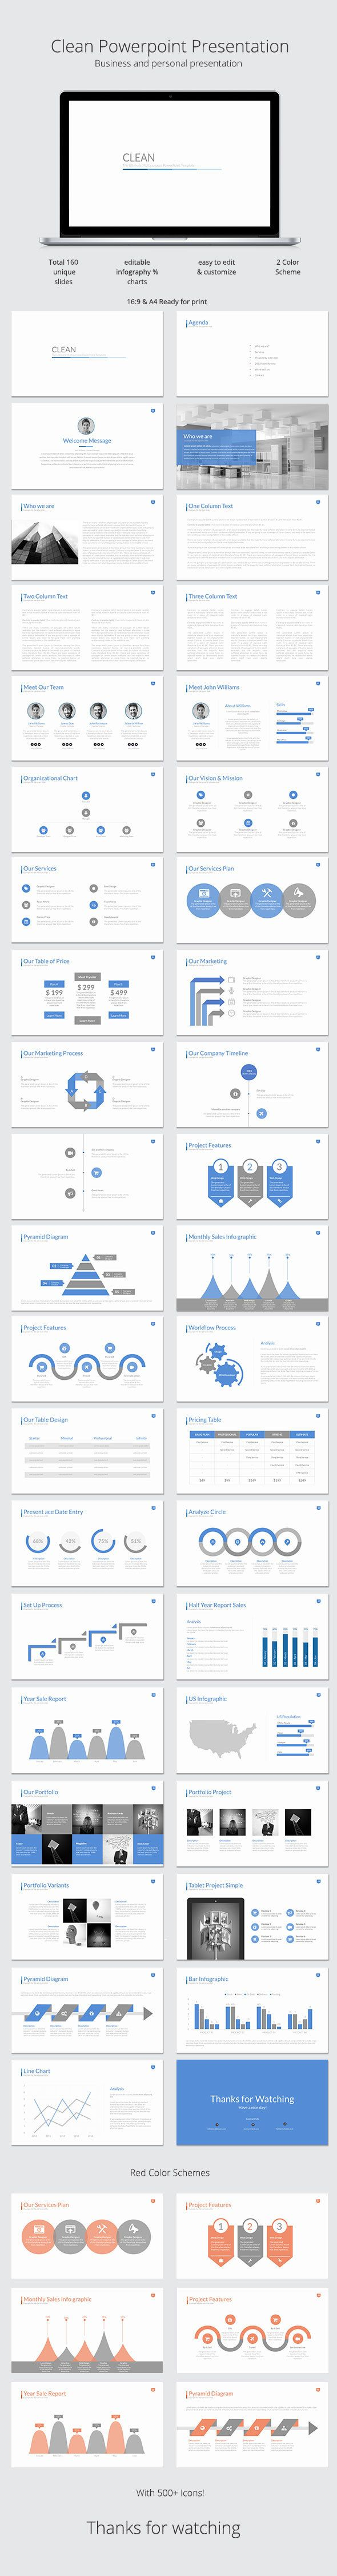 Usdgus  Scenic  Ideas About Powerpoint Presentations On Pinterest With Goodlooking Clean Powerpoint Template With Nice Guided Reading Powerpoint Also Footer Powerpoint In Addition Powerpoint Supported Video Formats And Modify Powerpoint Template As Well As Powerpoint To Prezi Additionally Ap Bio Powerpoints From Pinterestcom With Usdgus  Goodlooking  Ideas About Powerpoint Presentations On Pinterest With Nice Clean Powerpoint Template And Scenic Guided Reading Powerpoint Also Footer Powerpoint In Addition Powerpoint Supported Video Formats From Pinterestcom